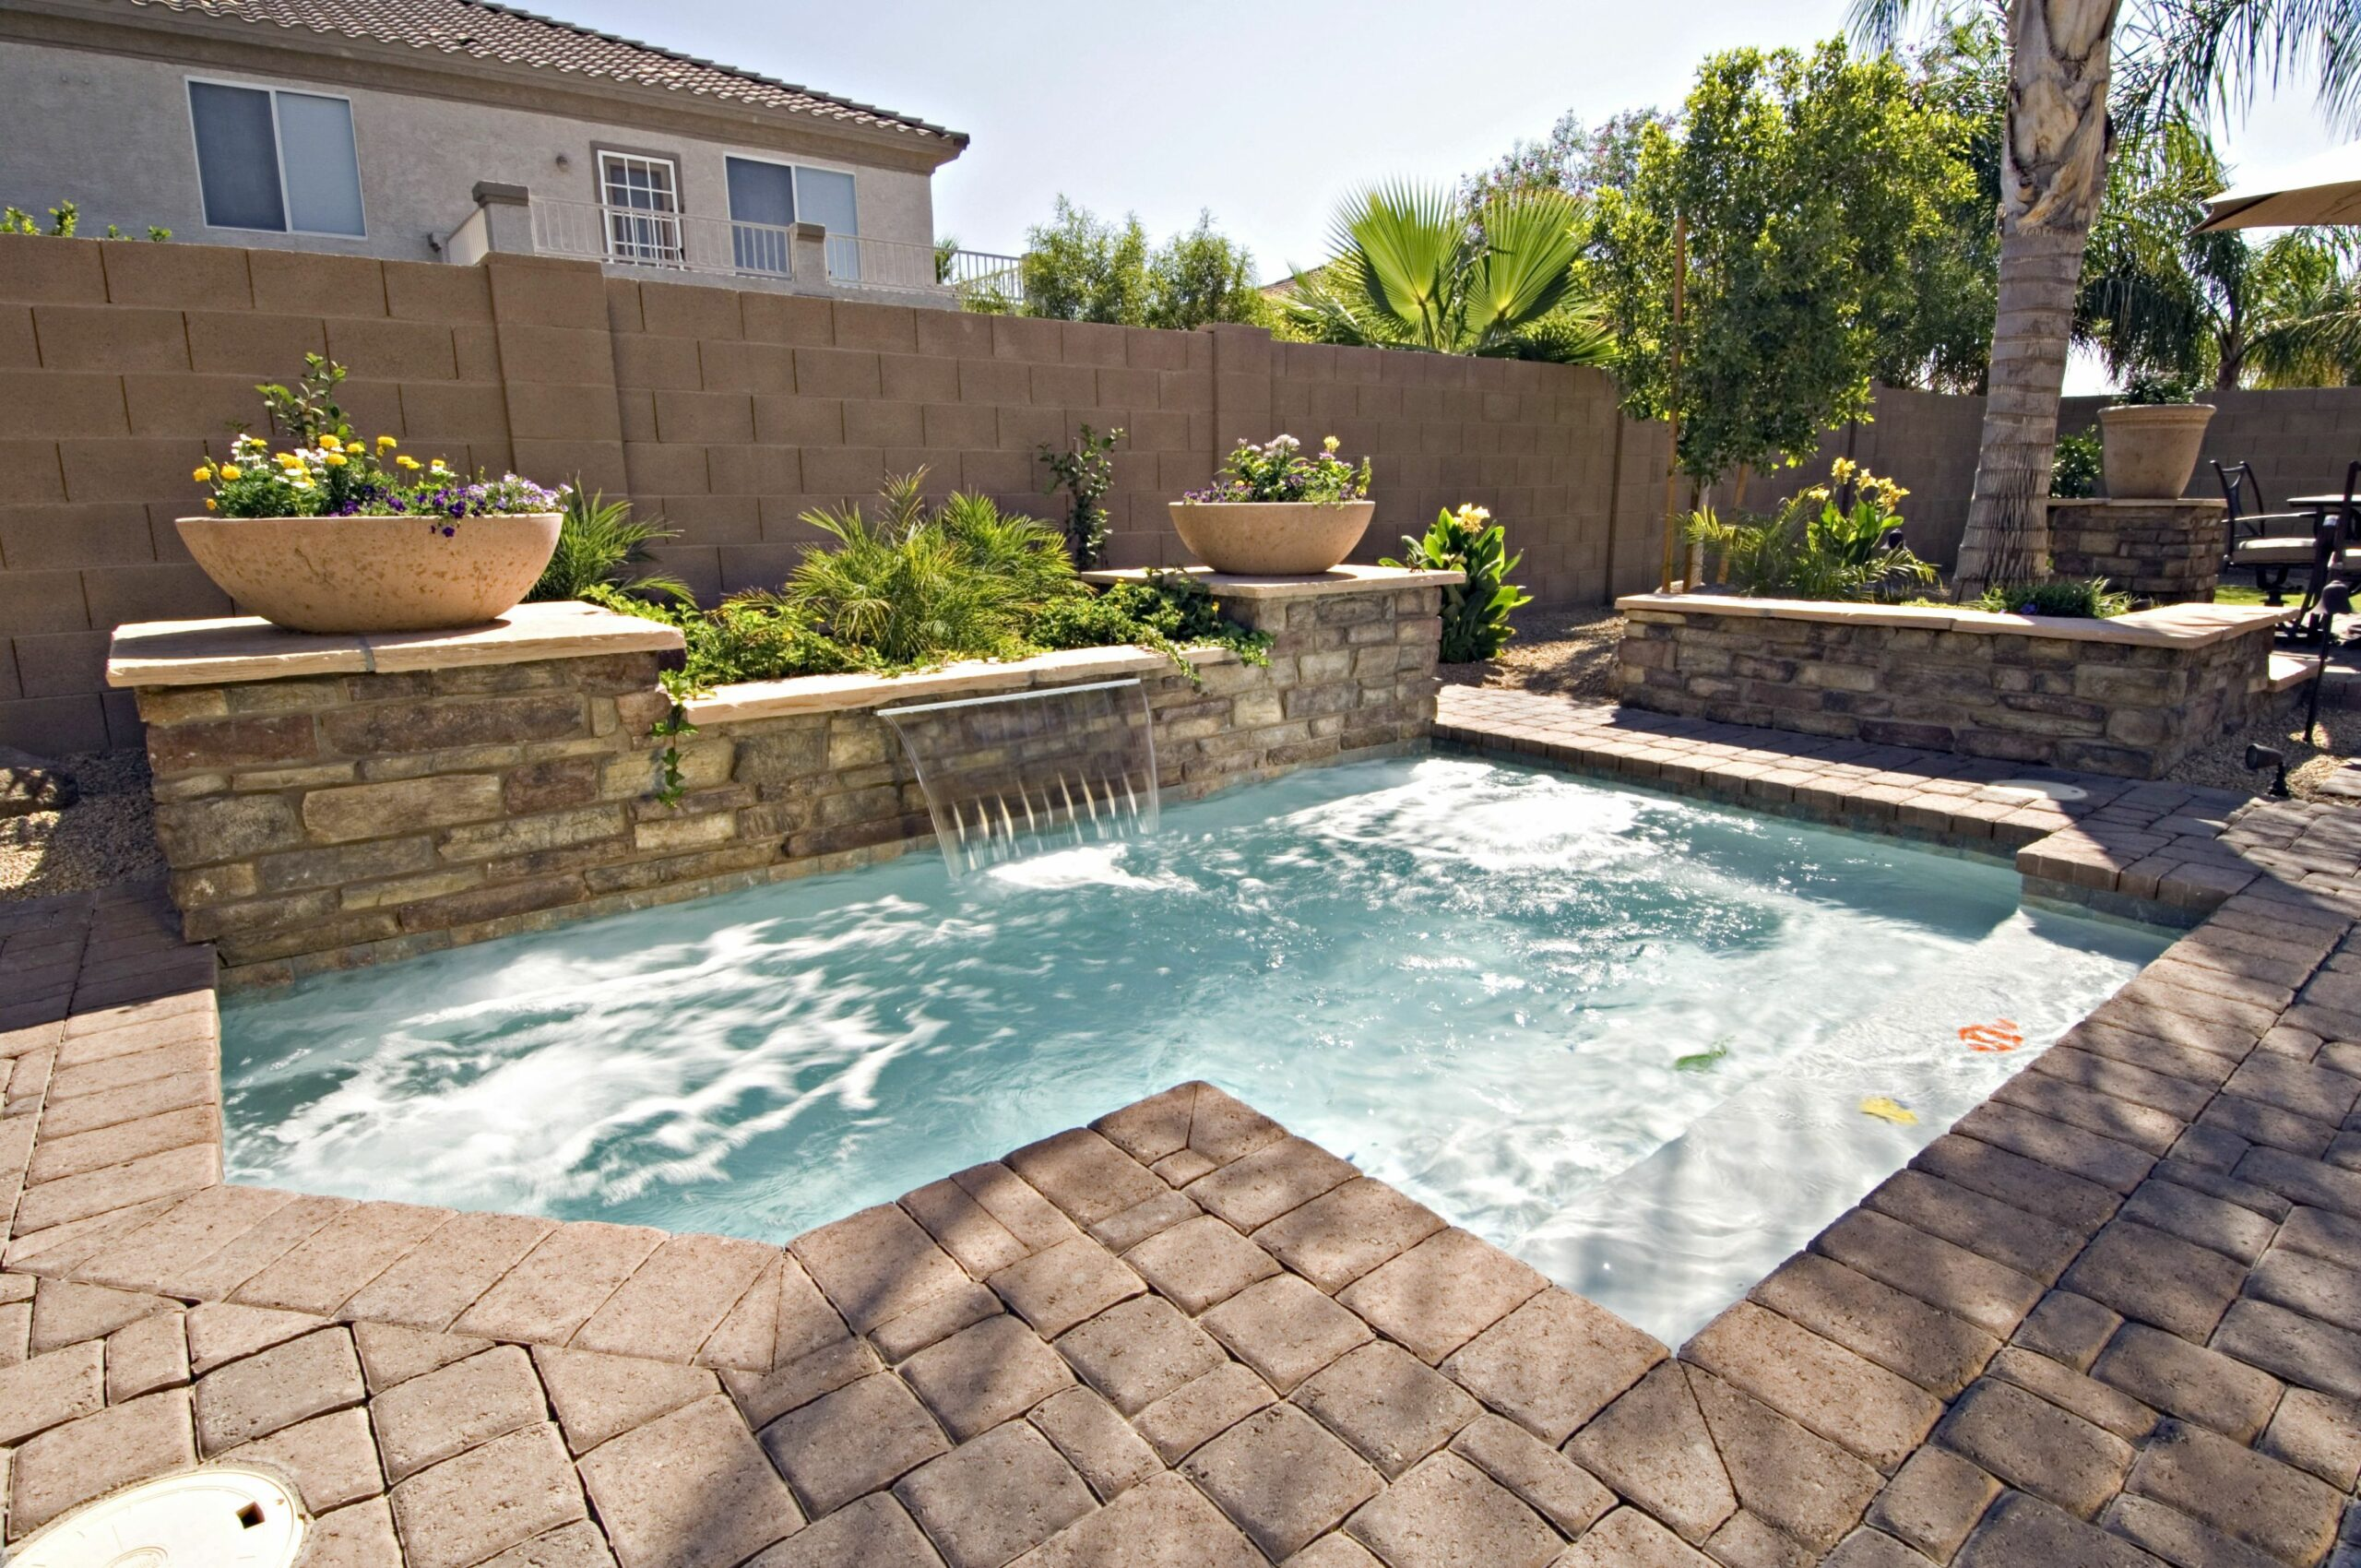 Amazing Small Backyard Jacuzzi Ideas (With images) | Small ..